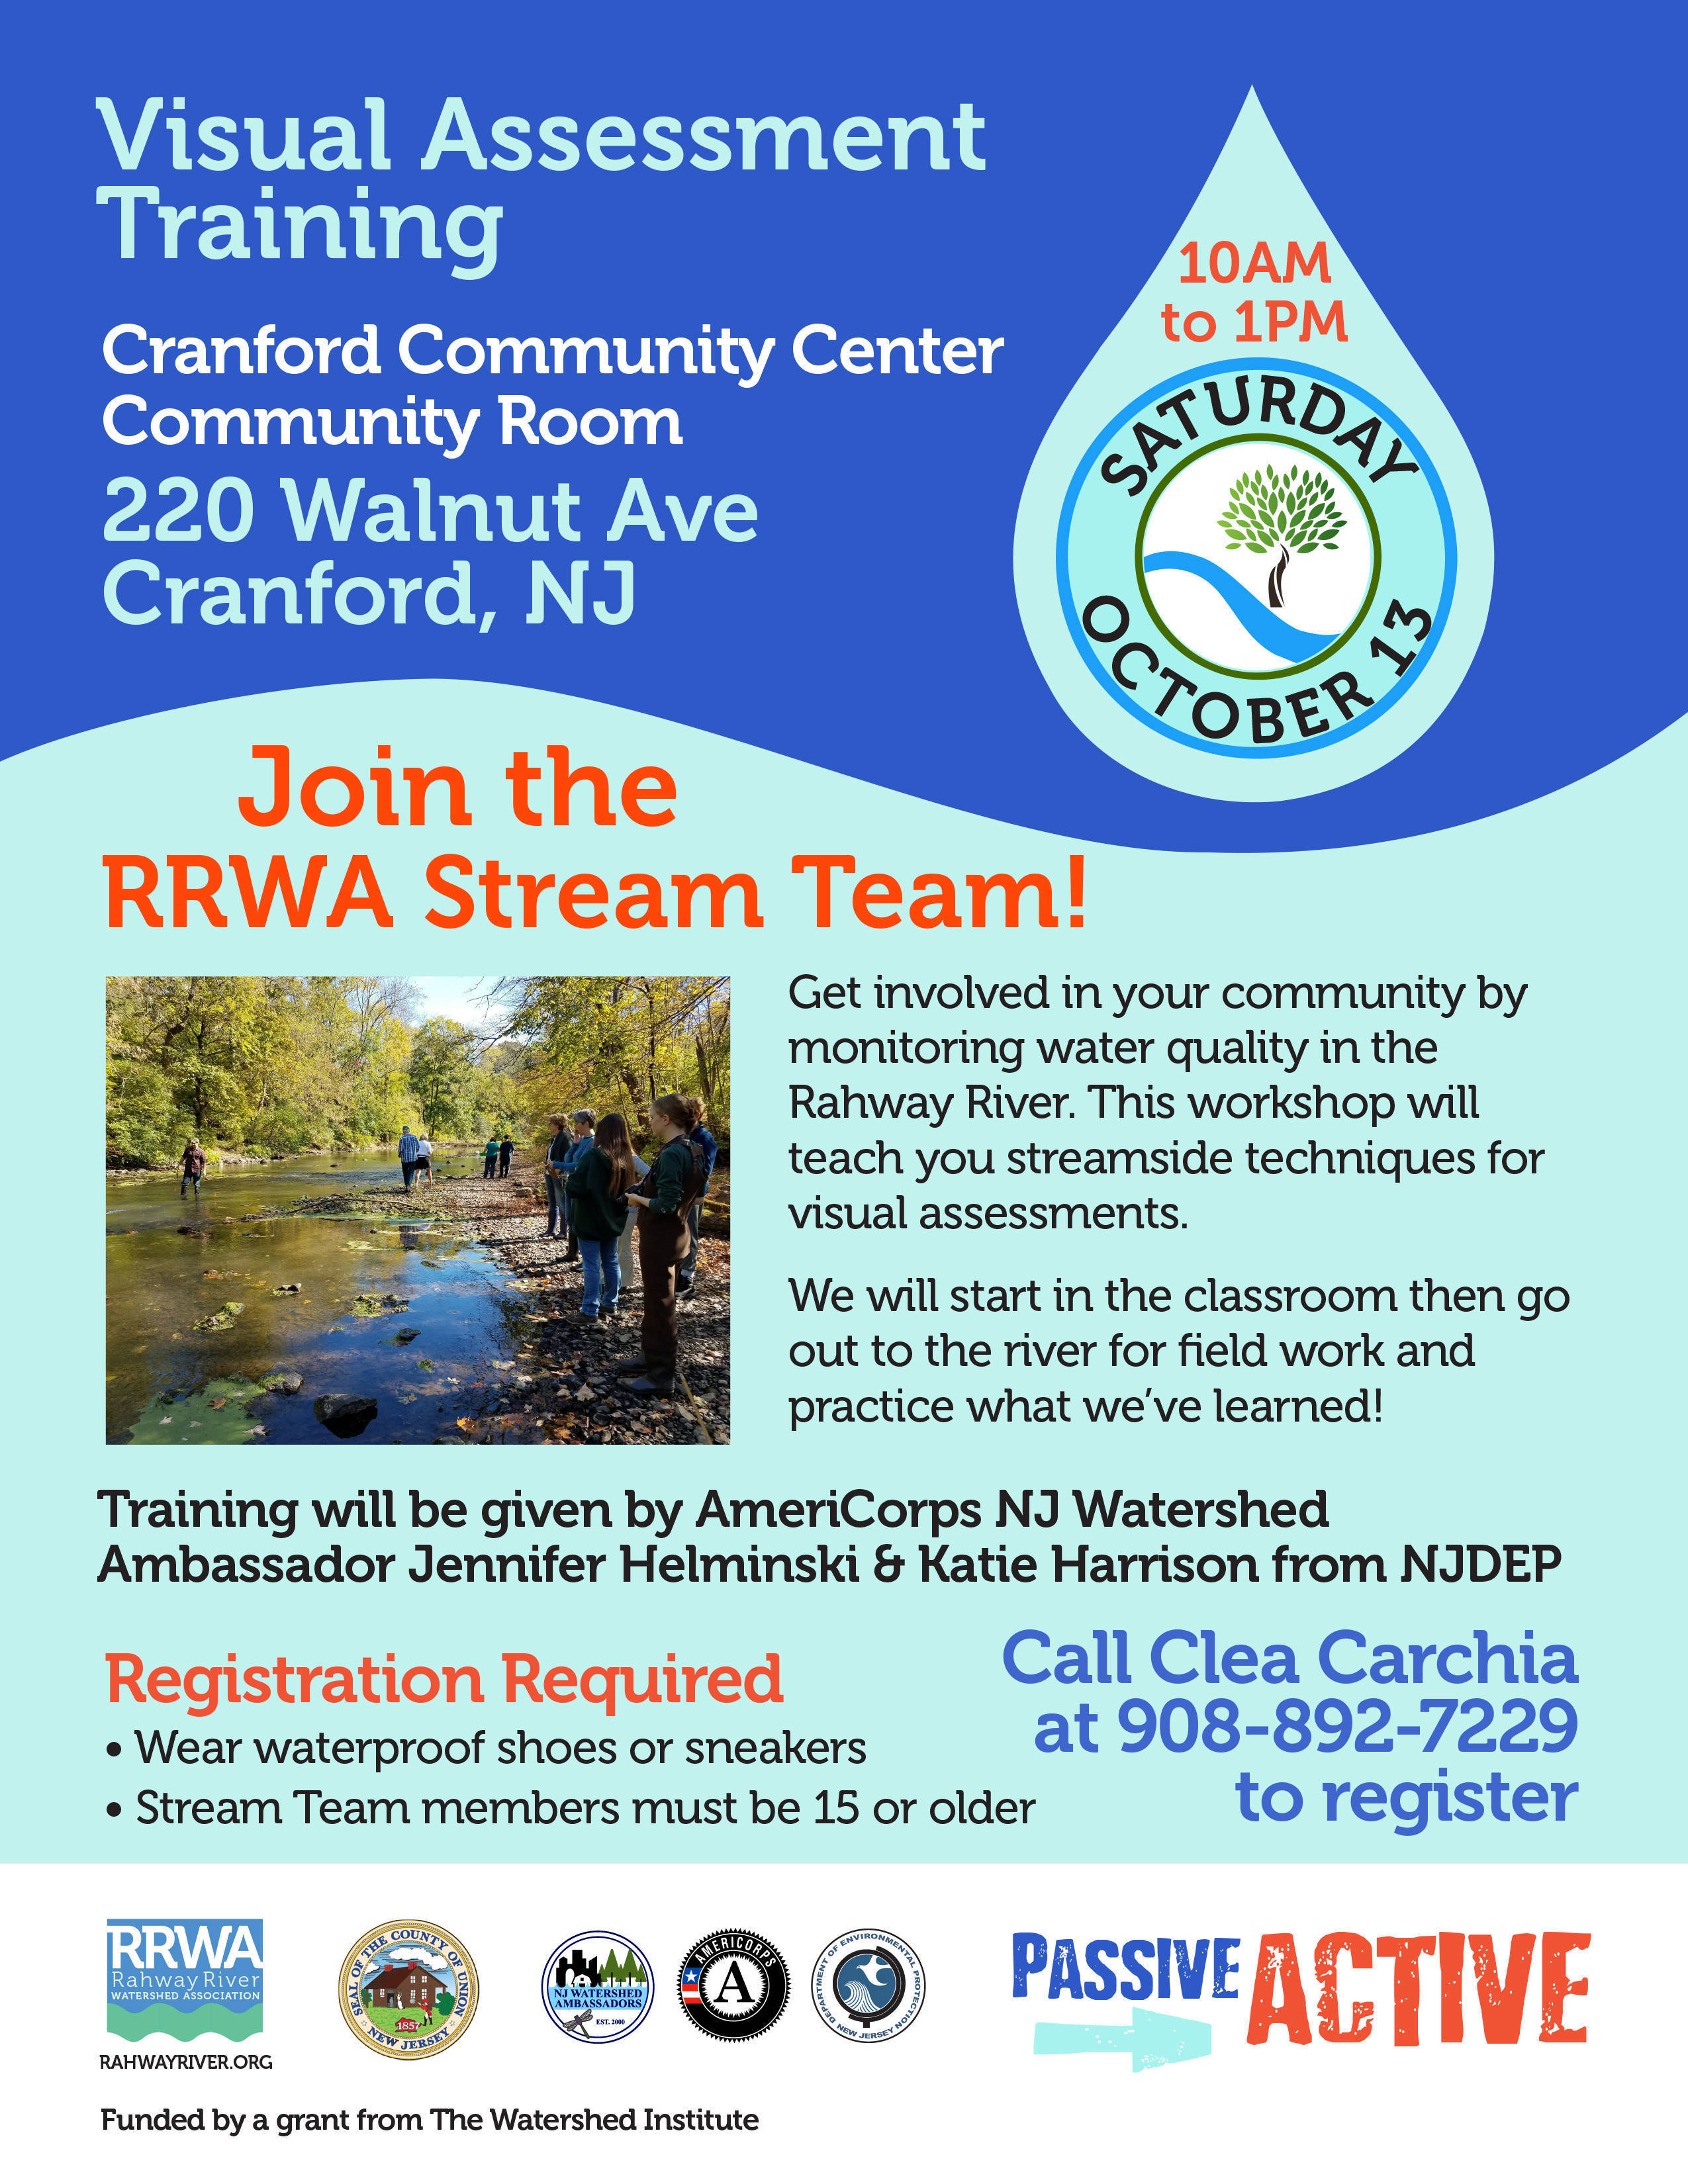 Water Quality Monitoring on the Rahway River